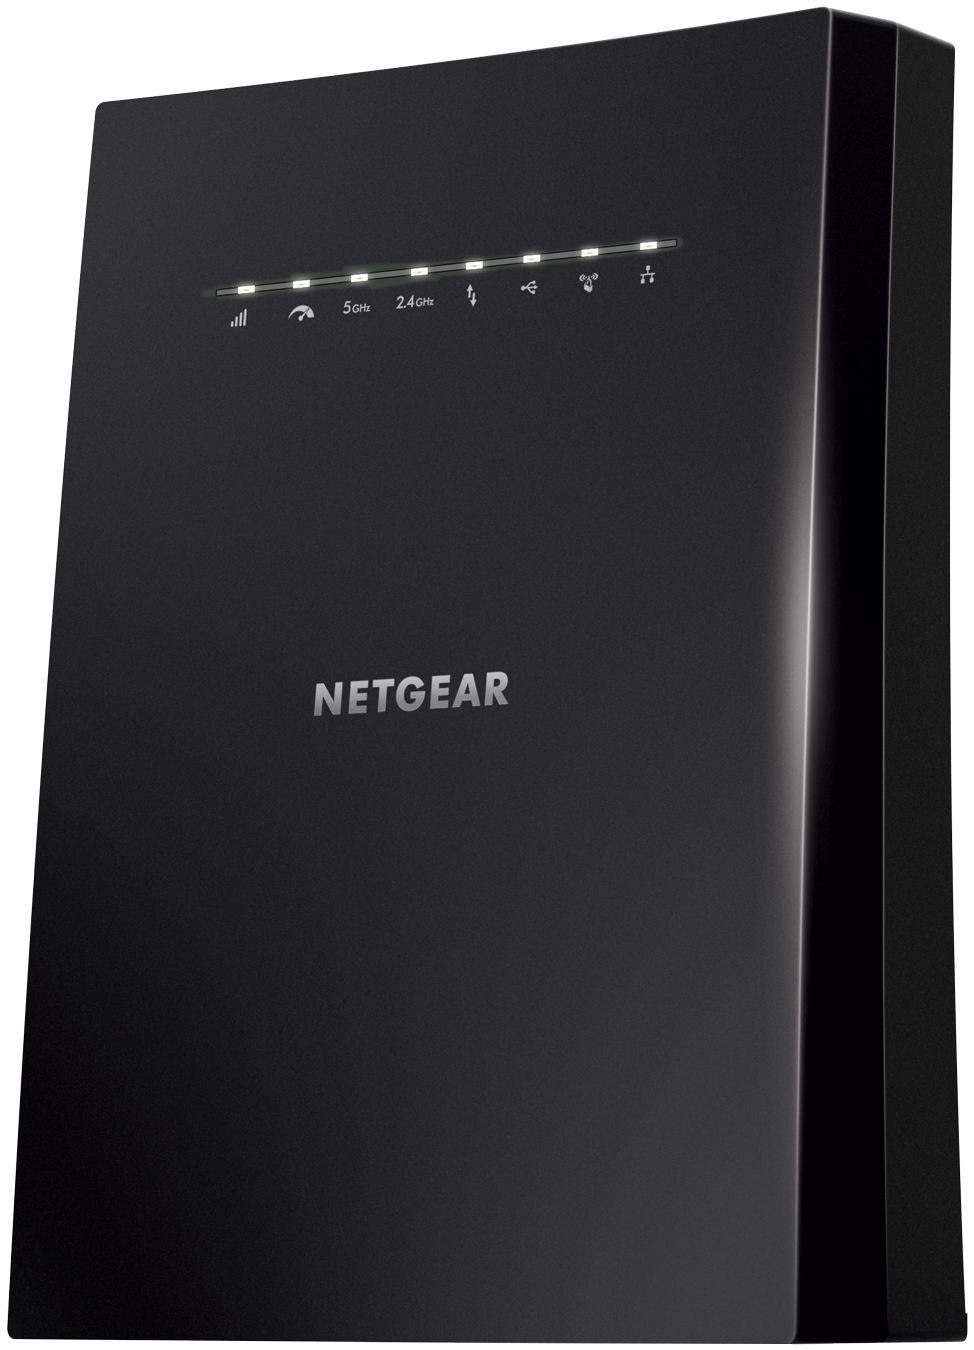 Netgear X6S Tri-band (2.4 GHz / 5 GHz / 5 GHz) Gigabit Ethernet Black wireless router